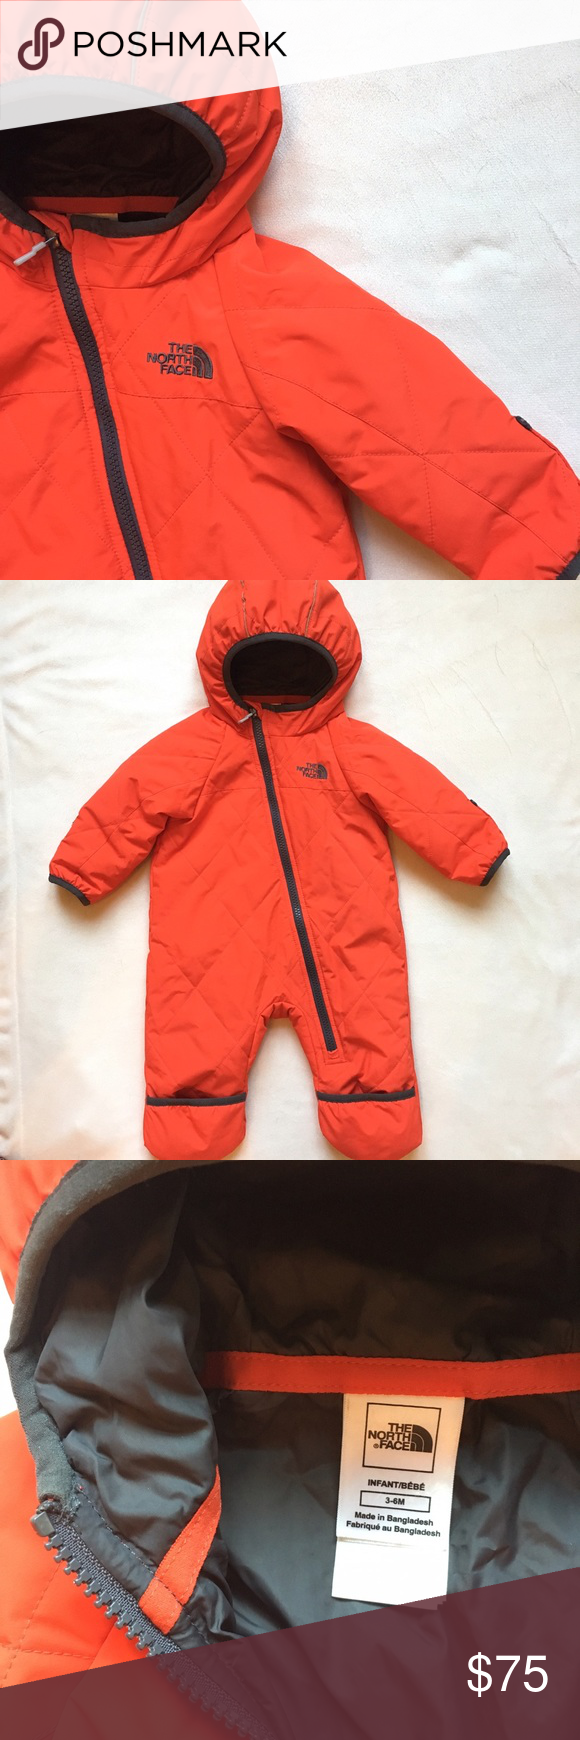 b9f15d57f The North Face Infant Winter Snow Suit NWOT The North Face Infant ...